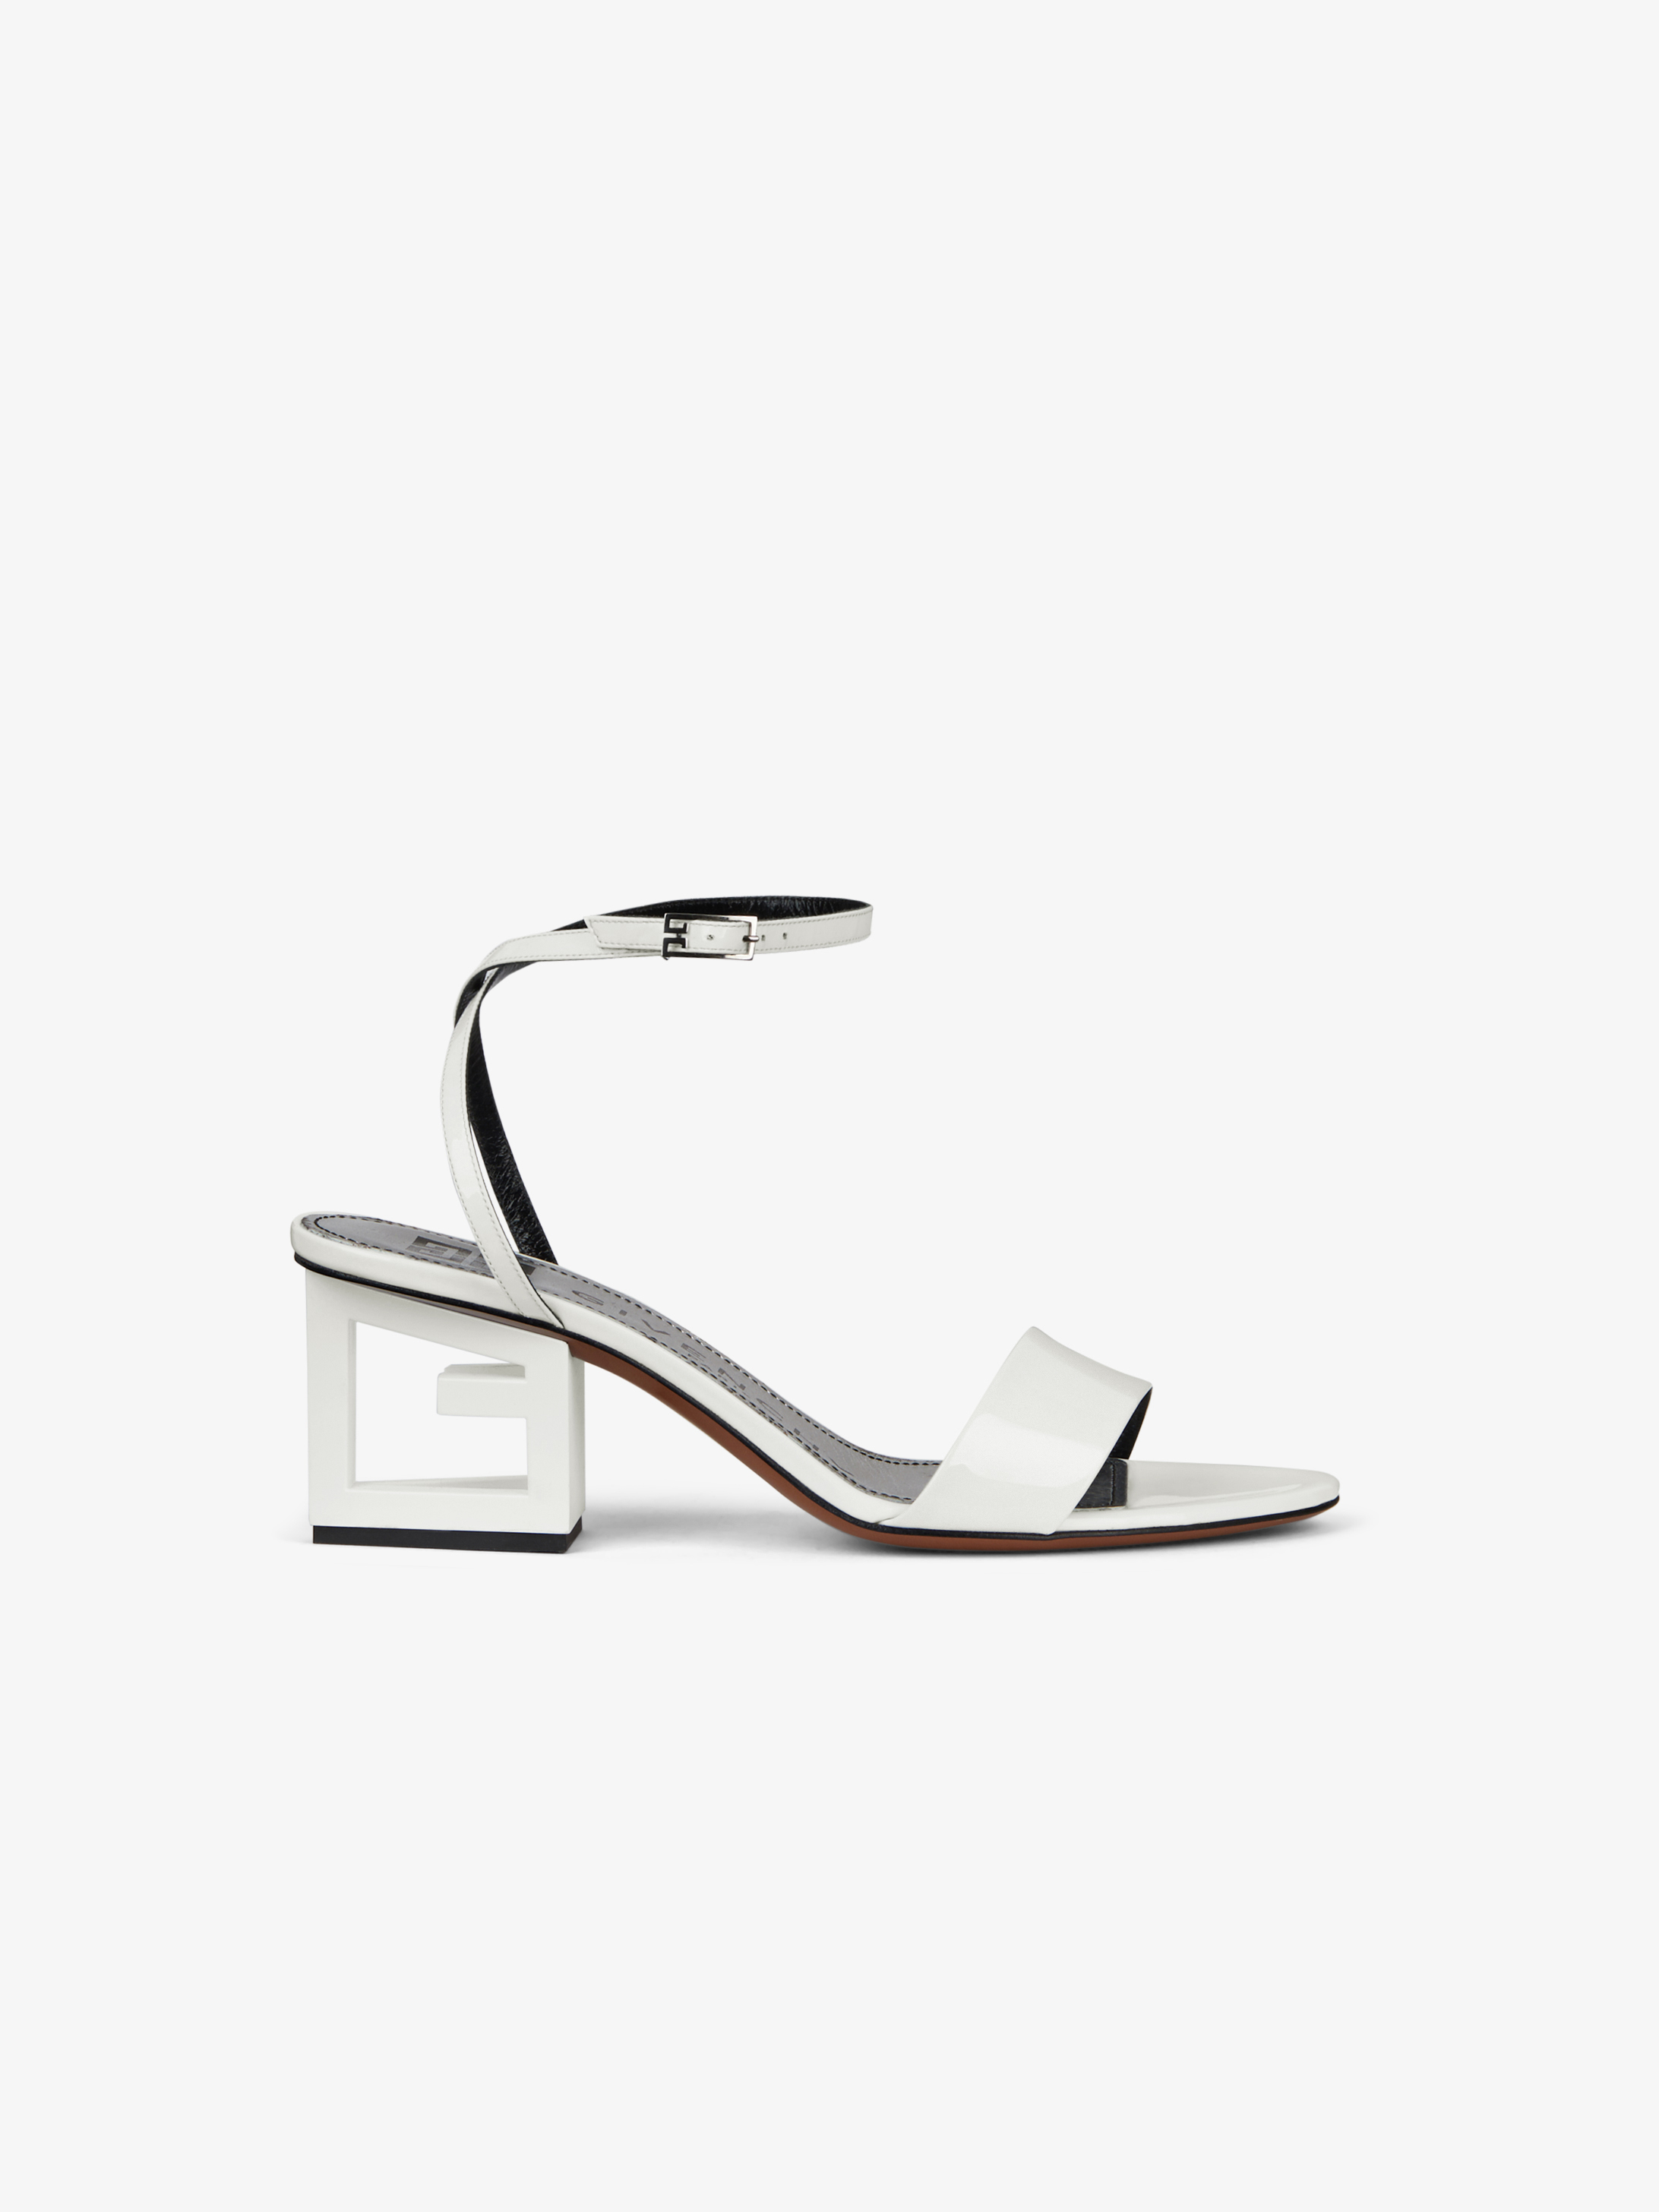 G heel sandals in patent leather